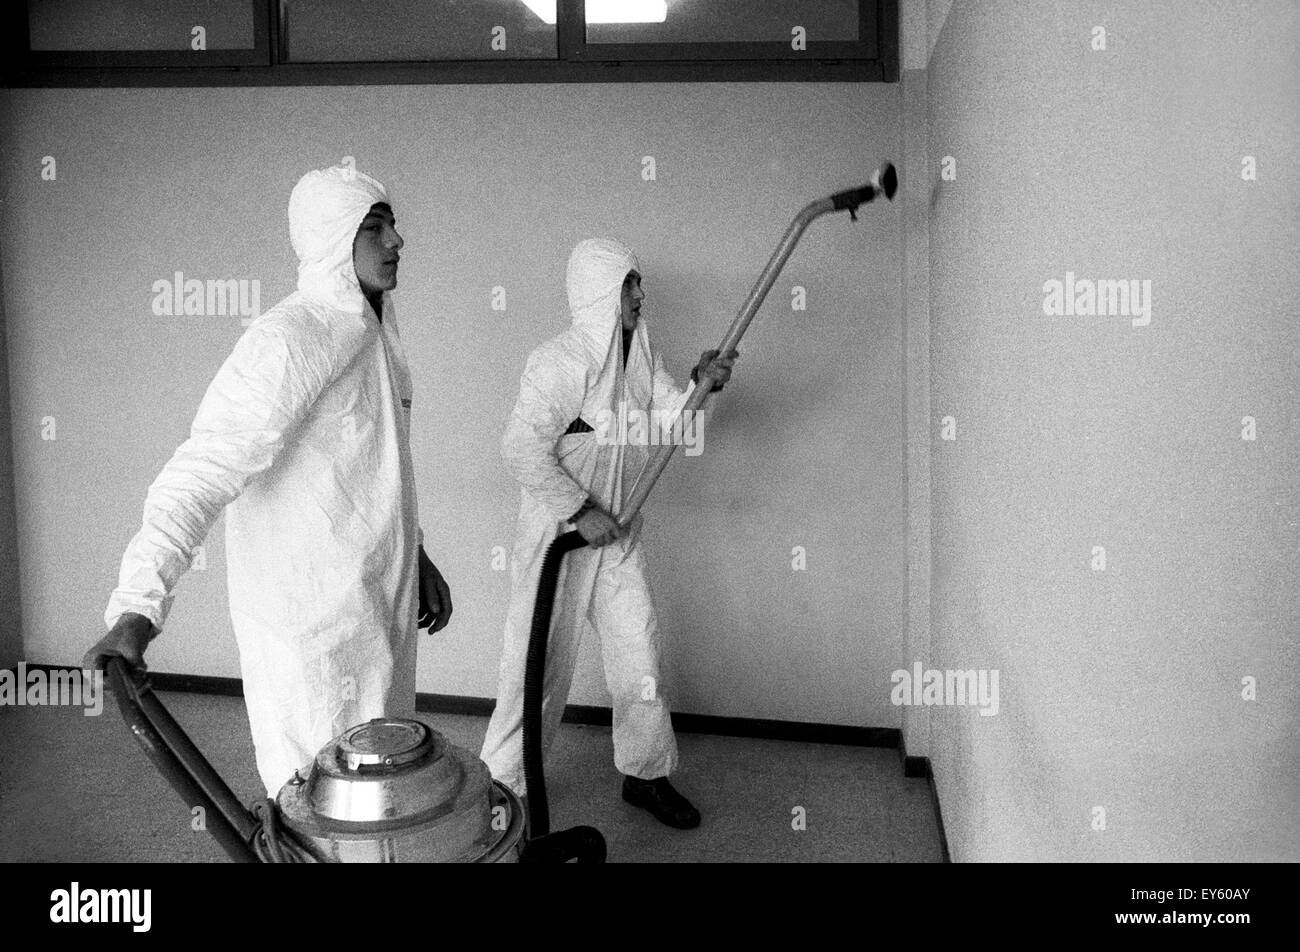 Italian Style Factory Seveso Mb decontamination black and white stock photos & images - alamy